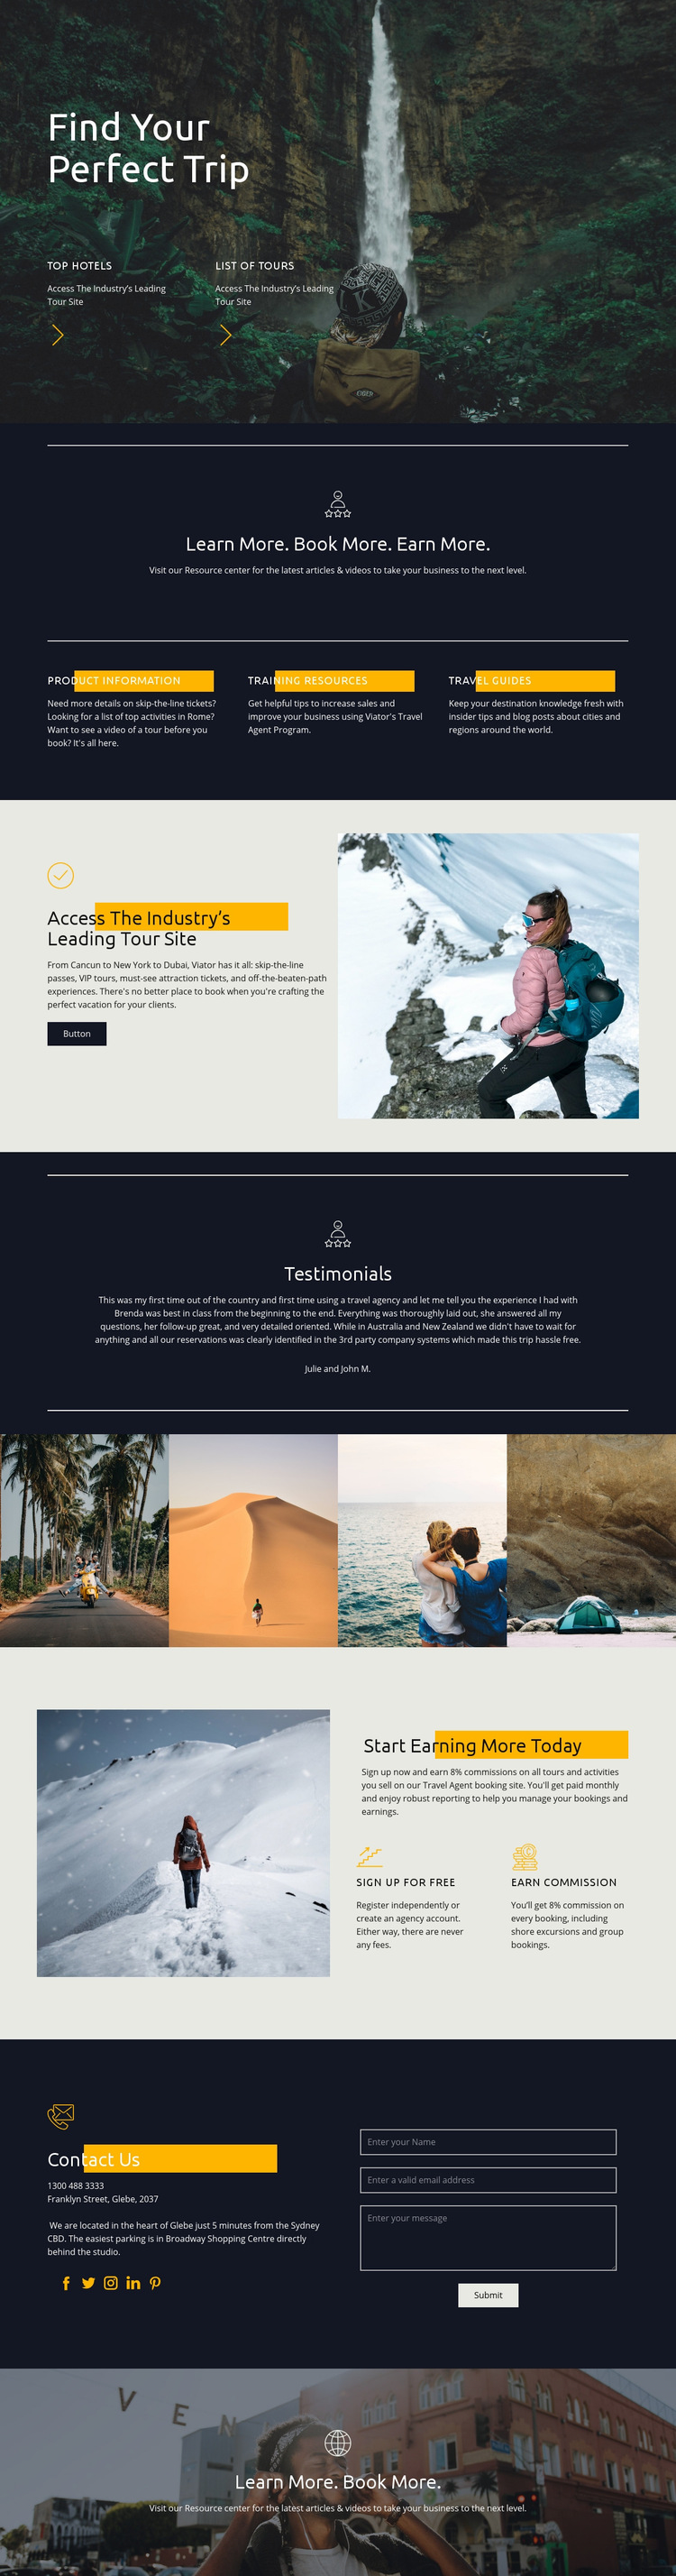 Find your perfect travel Web Page Design